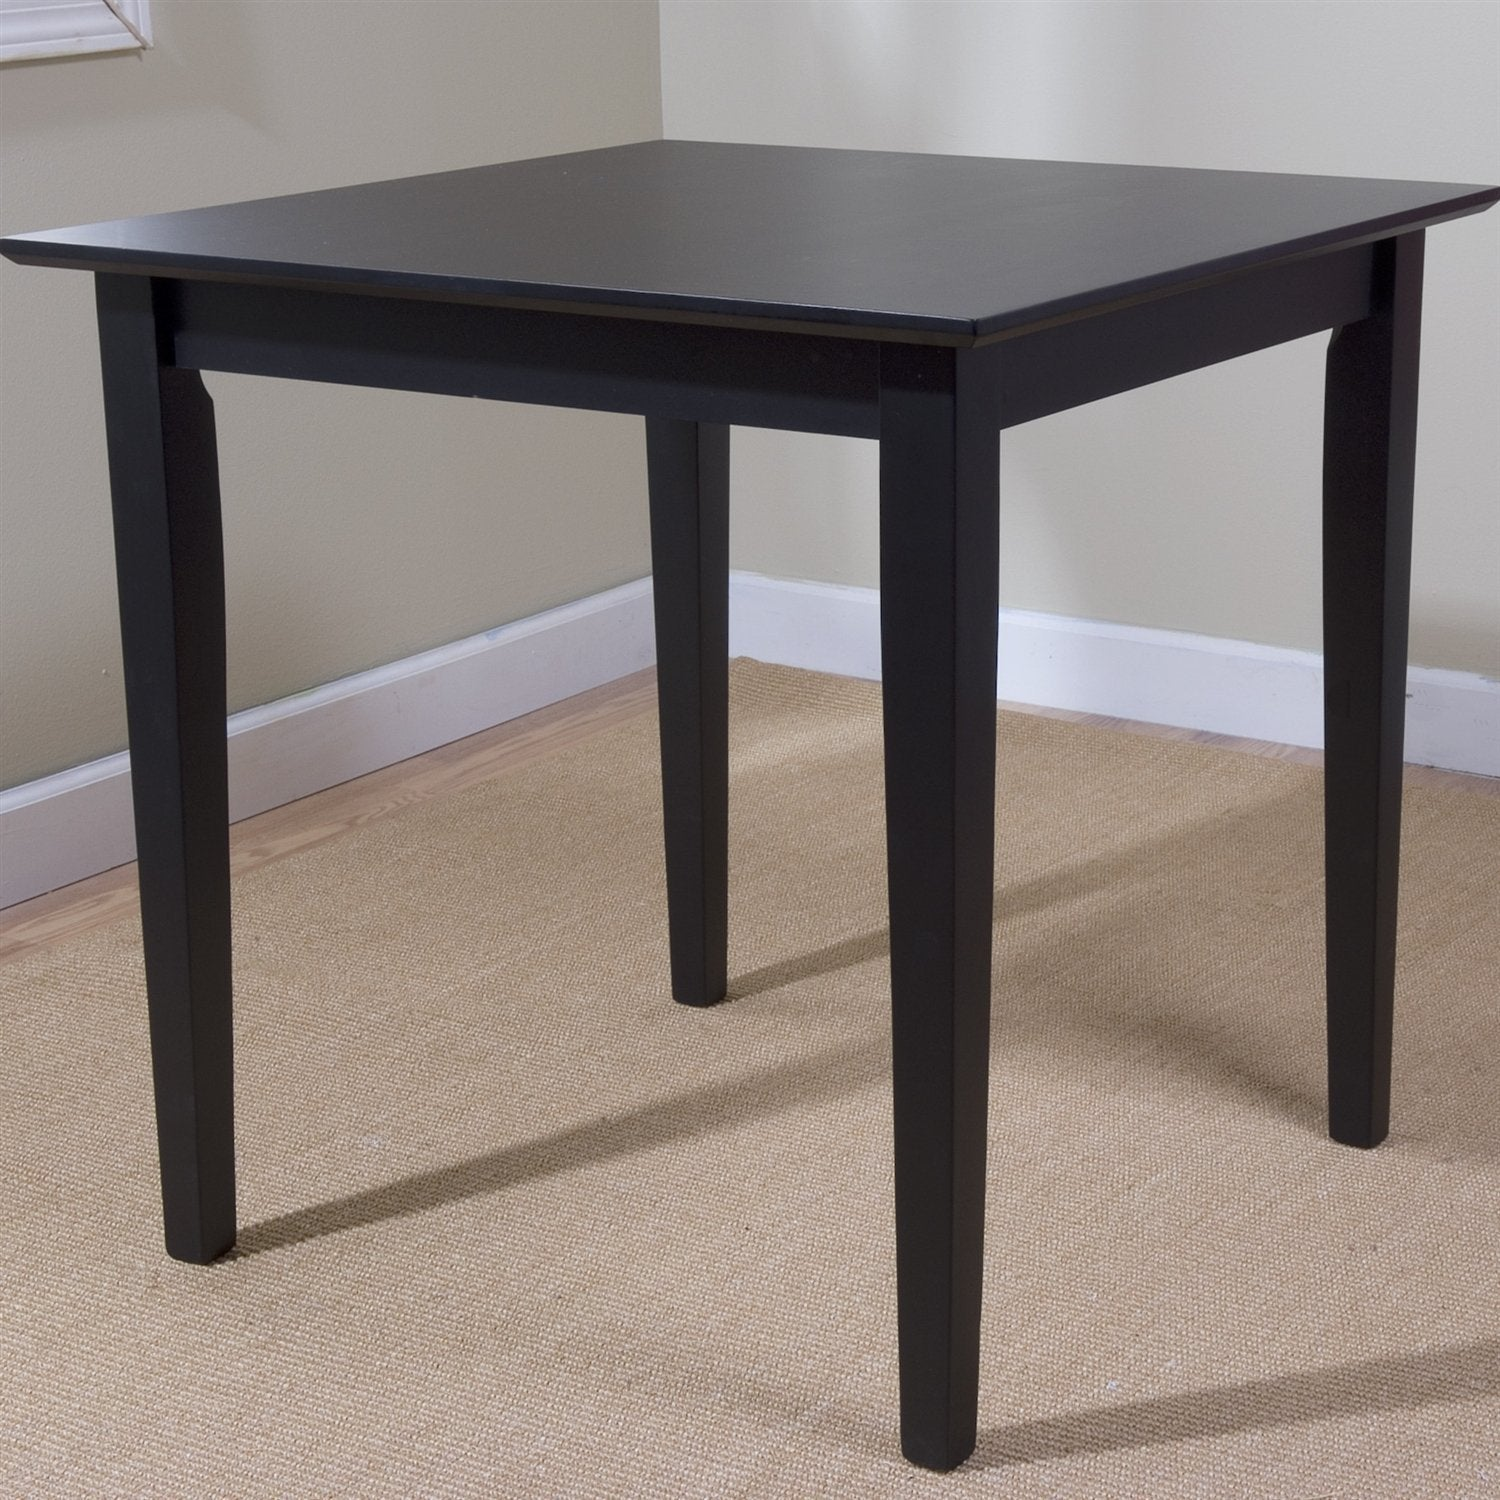 Black Square Wood Dining Table Contemporary Style w/ Shaker Legs.